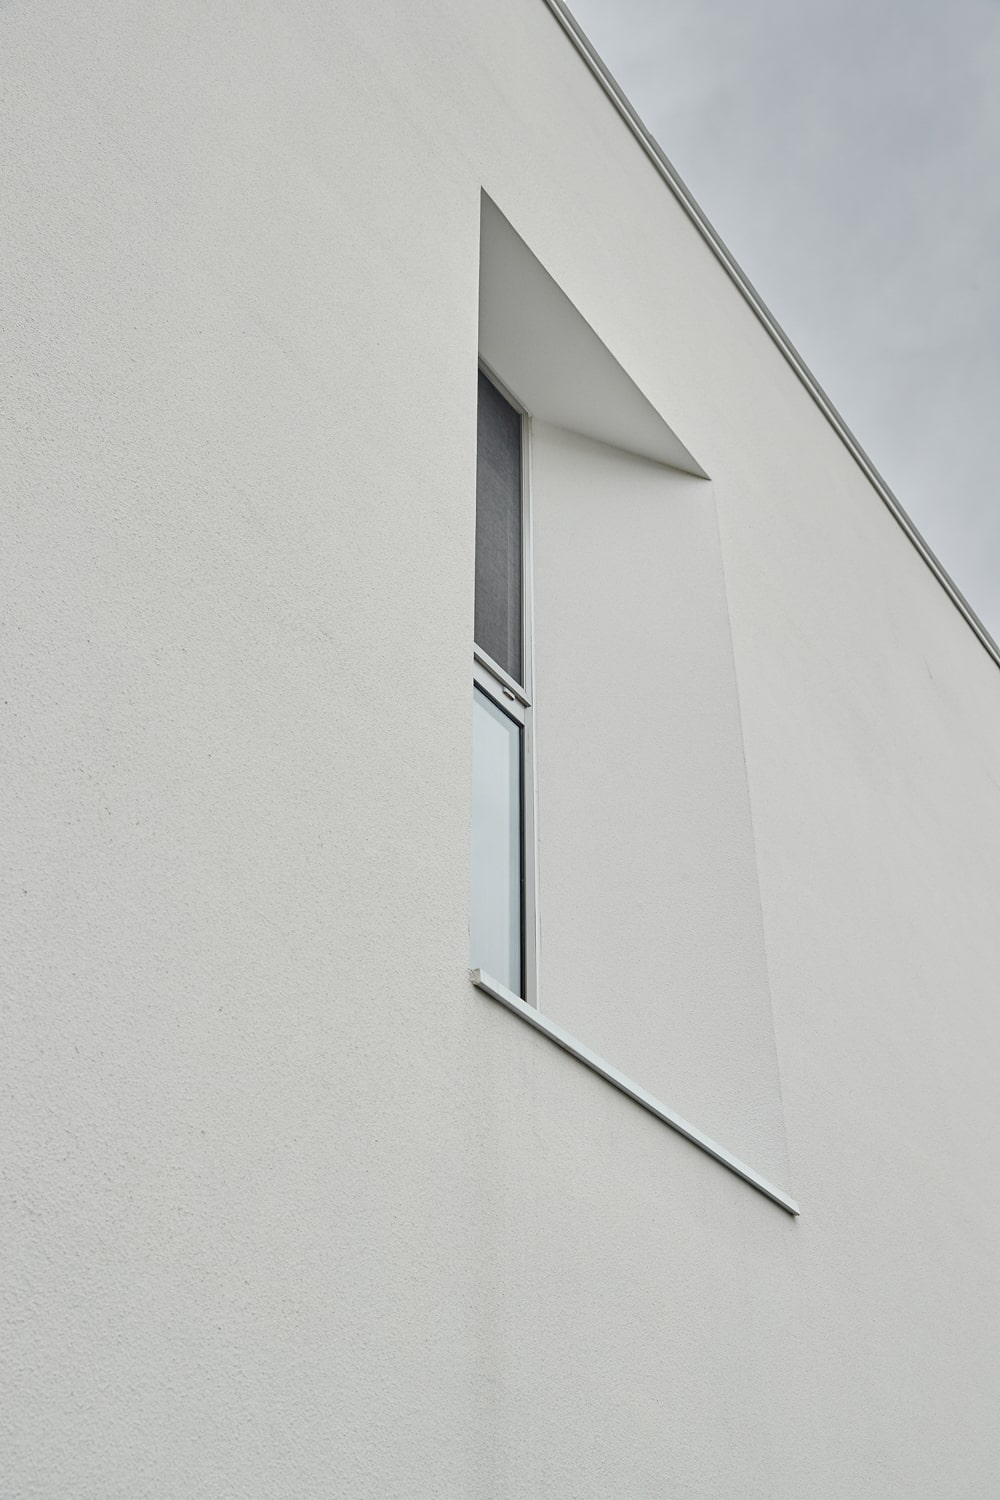 This is a closer look at the window of the upper floor that has a unique embedded design and angled position.